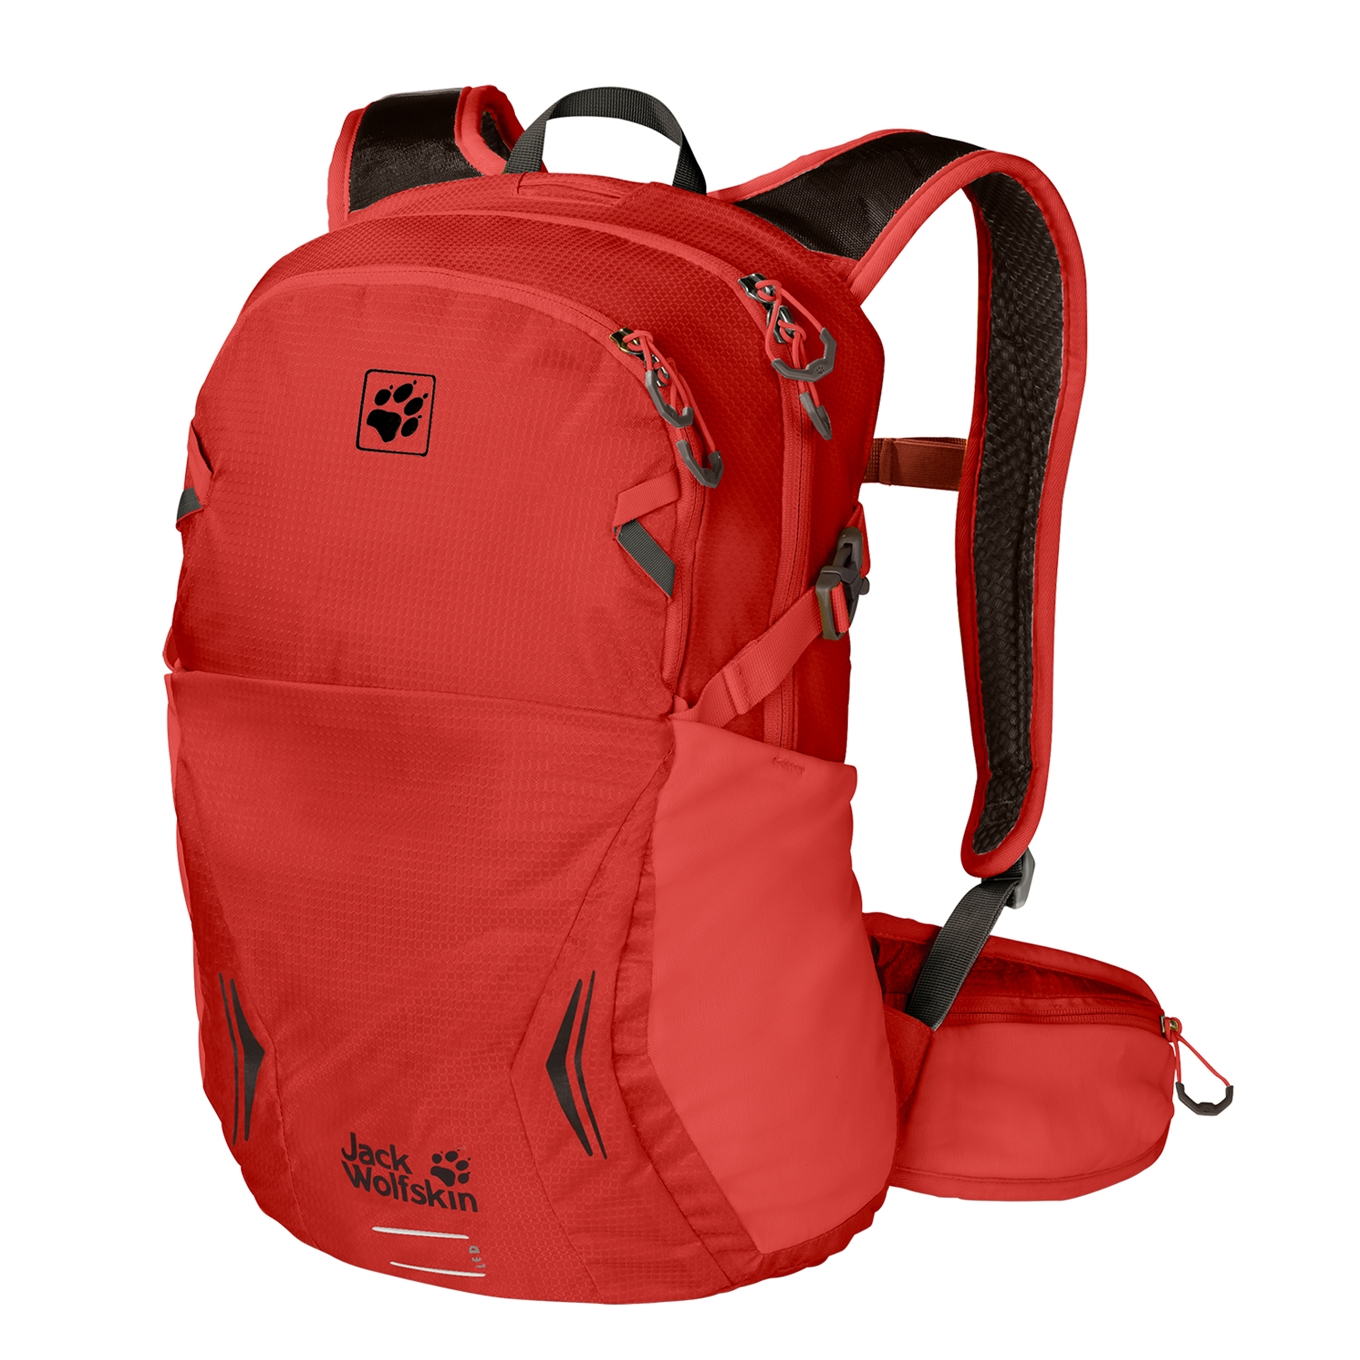 Jack Wolfskin Moab Jam 18 lava red backpack